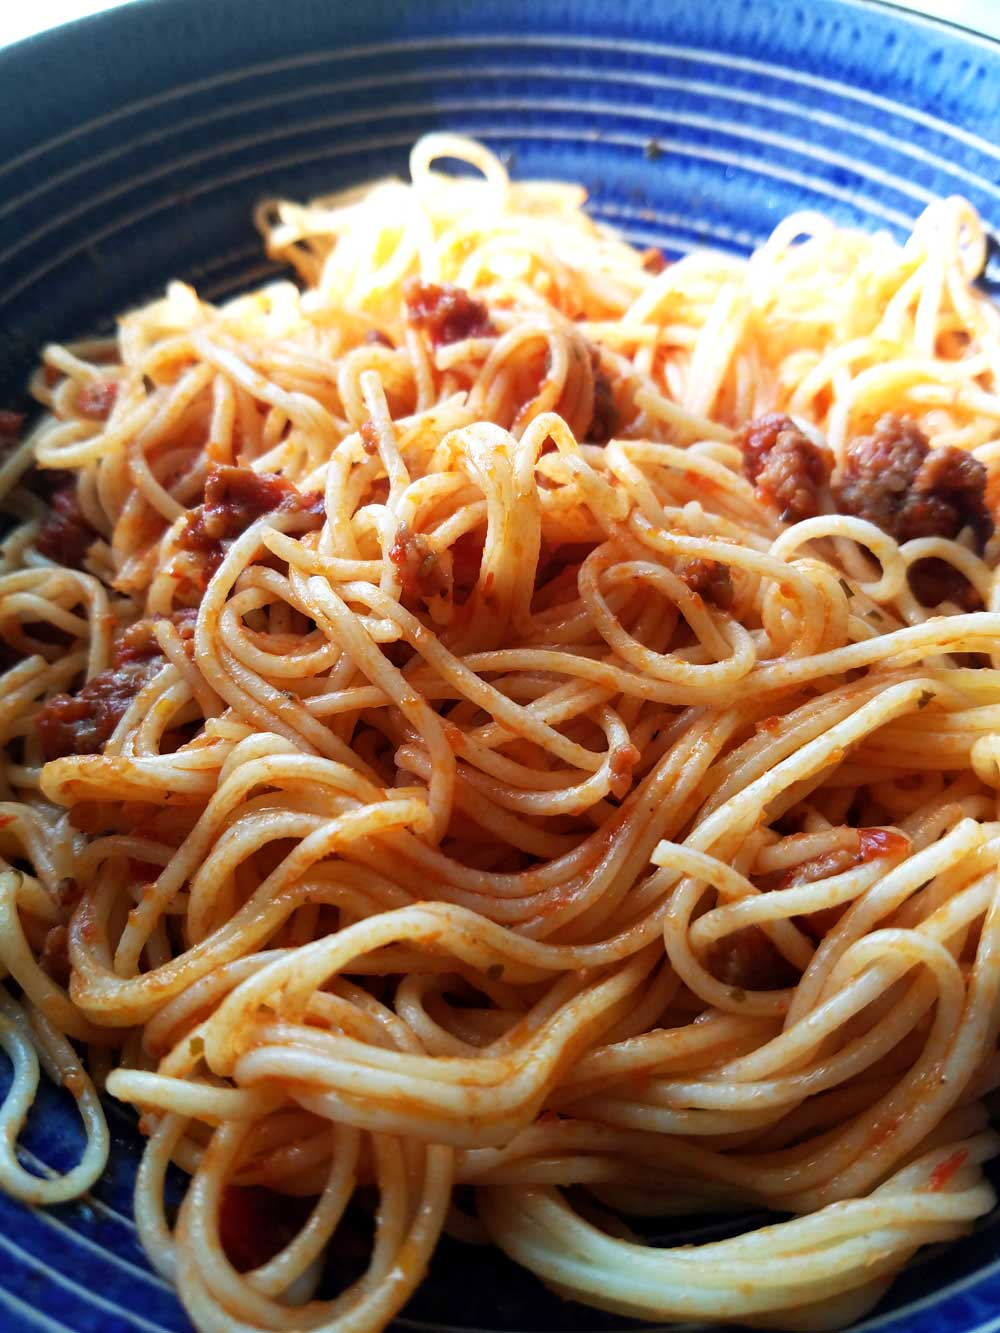 spaghetti on a blue plate